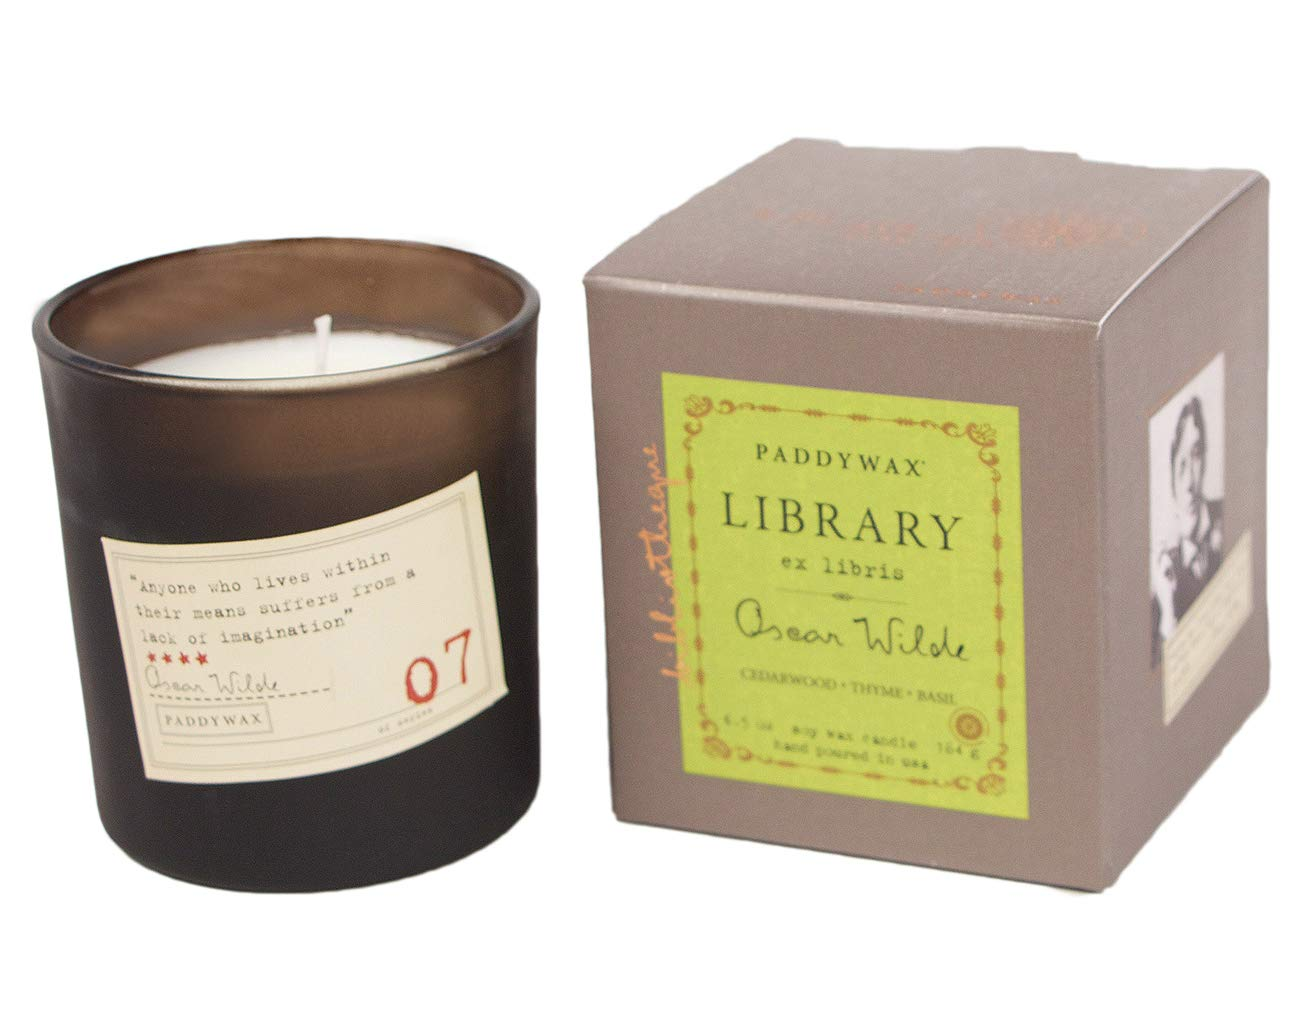 Paddywax Library Collection Oscar Wilde Scented Soy